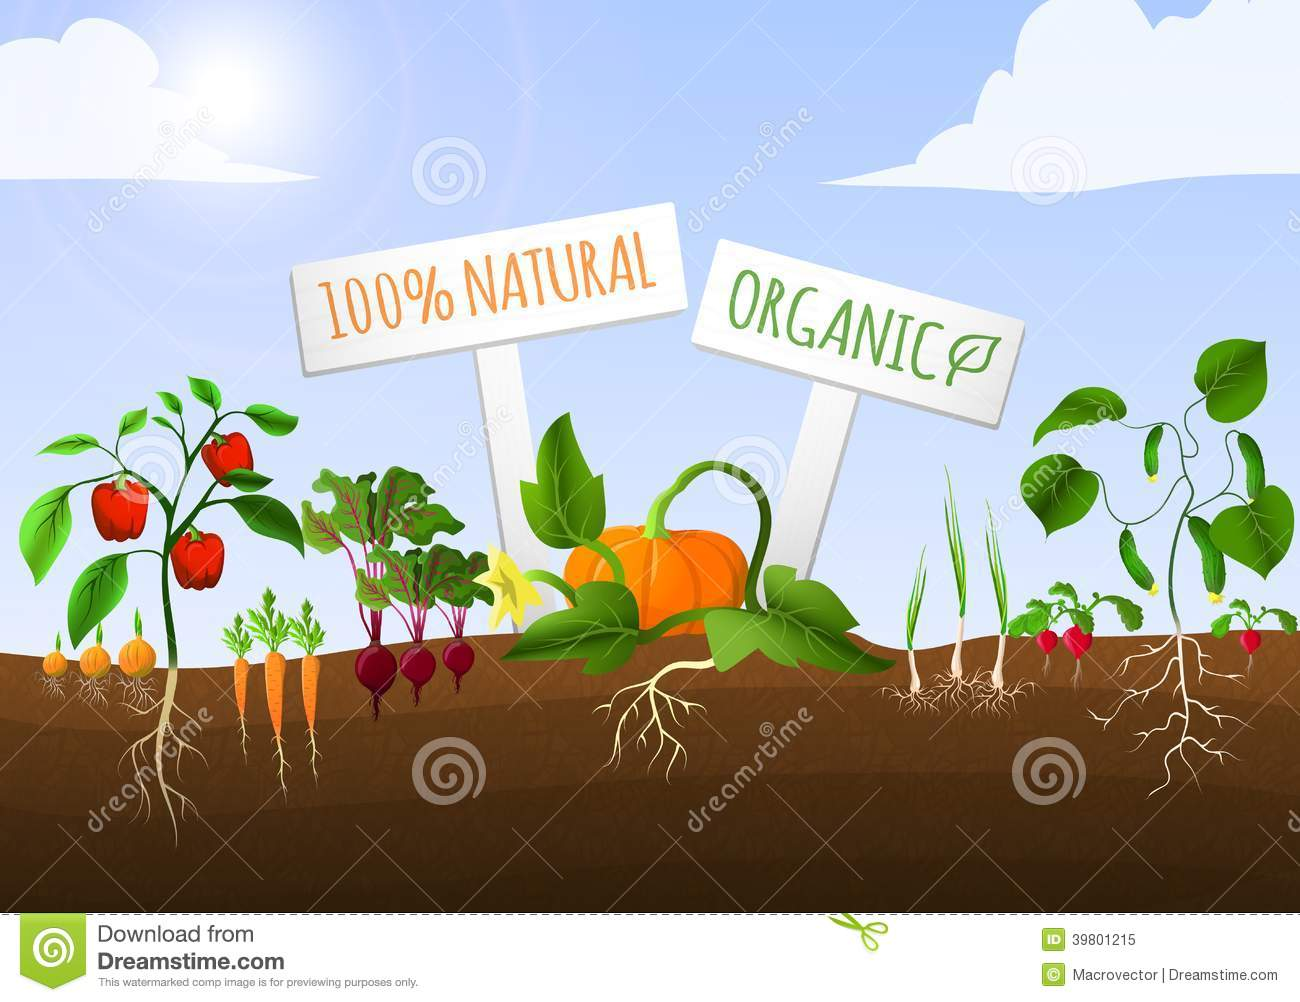 Vegetable garden graphic - Royalty Free Stock Photo